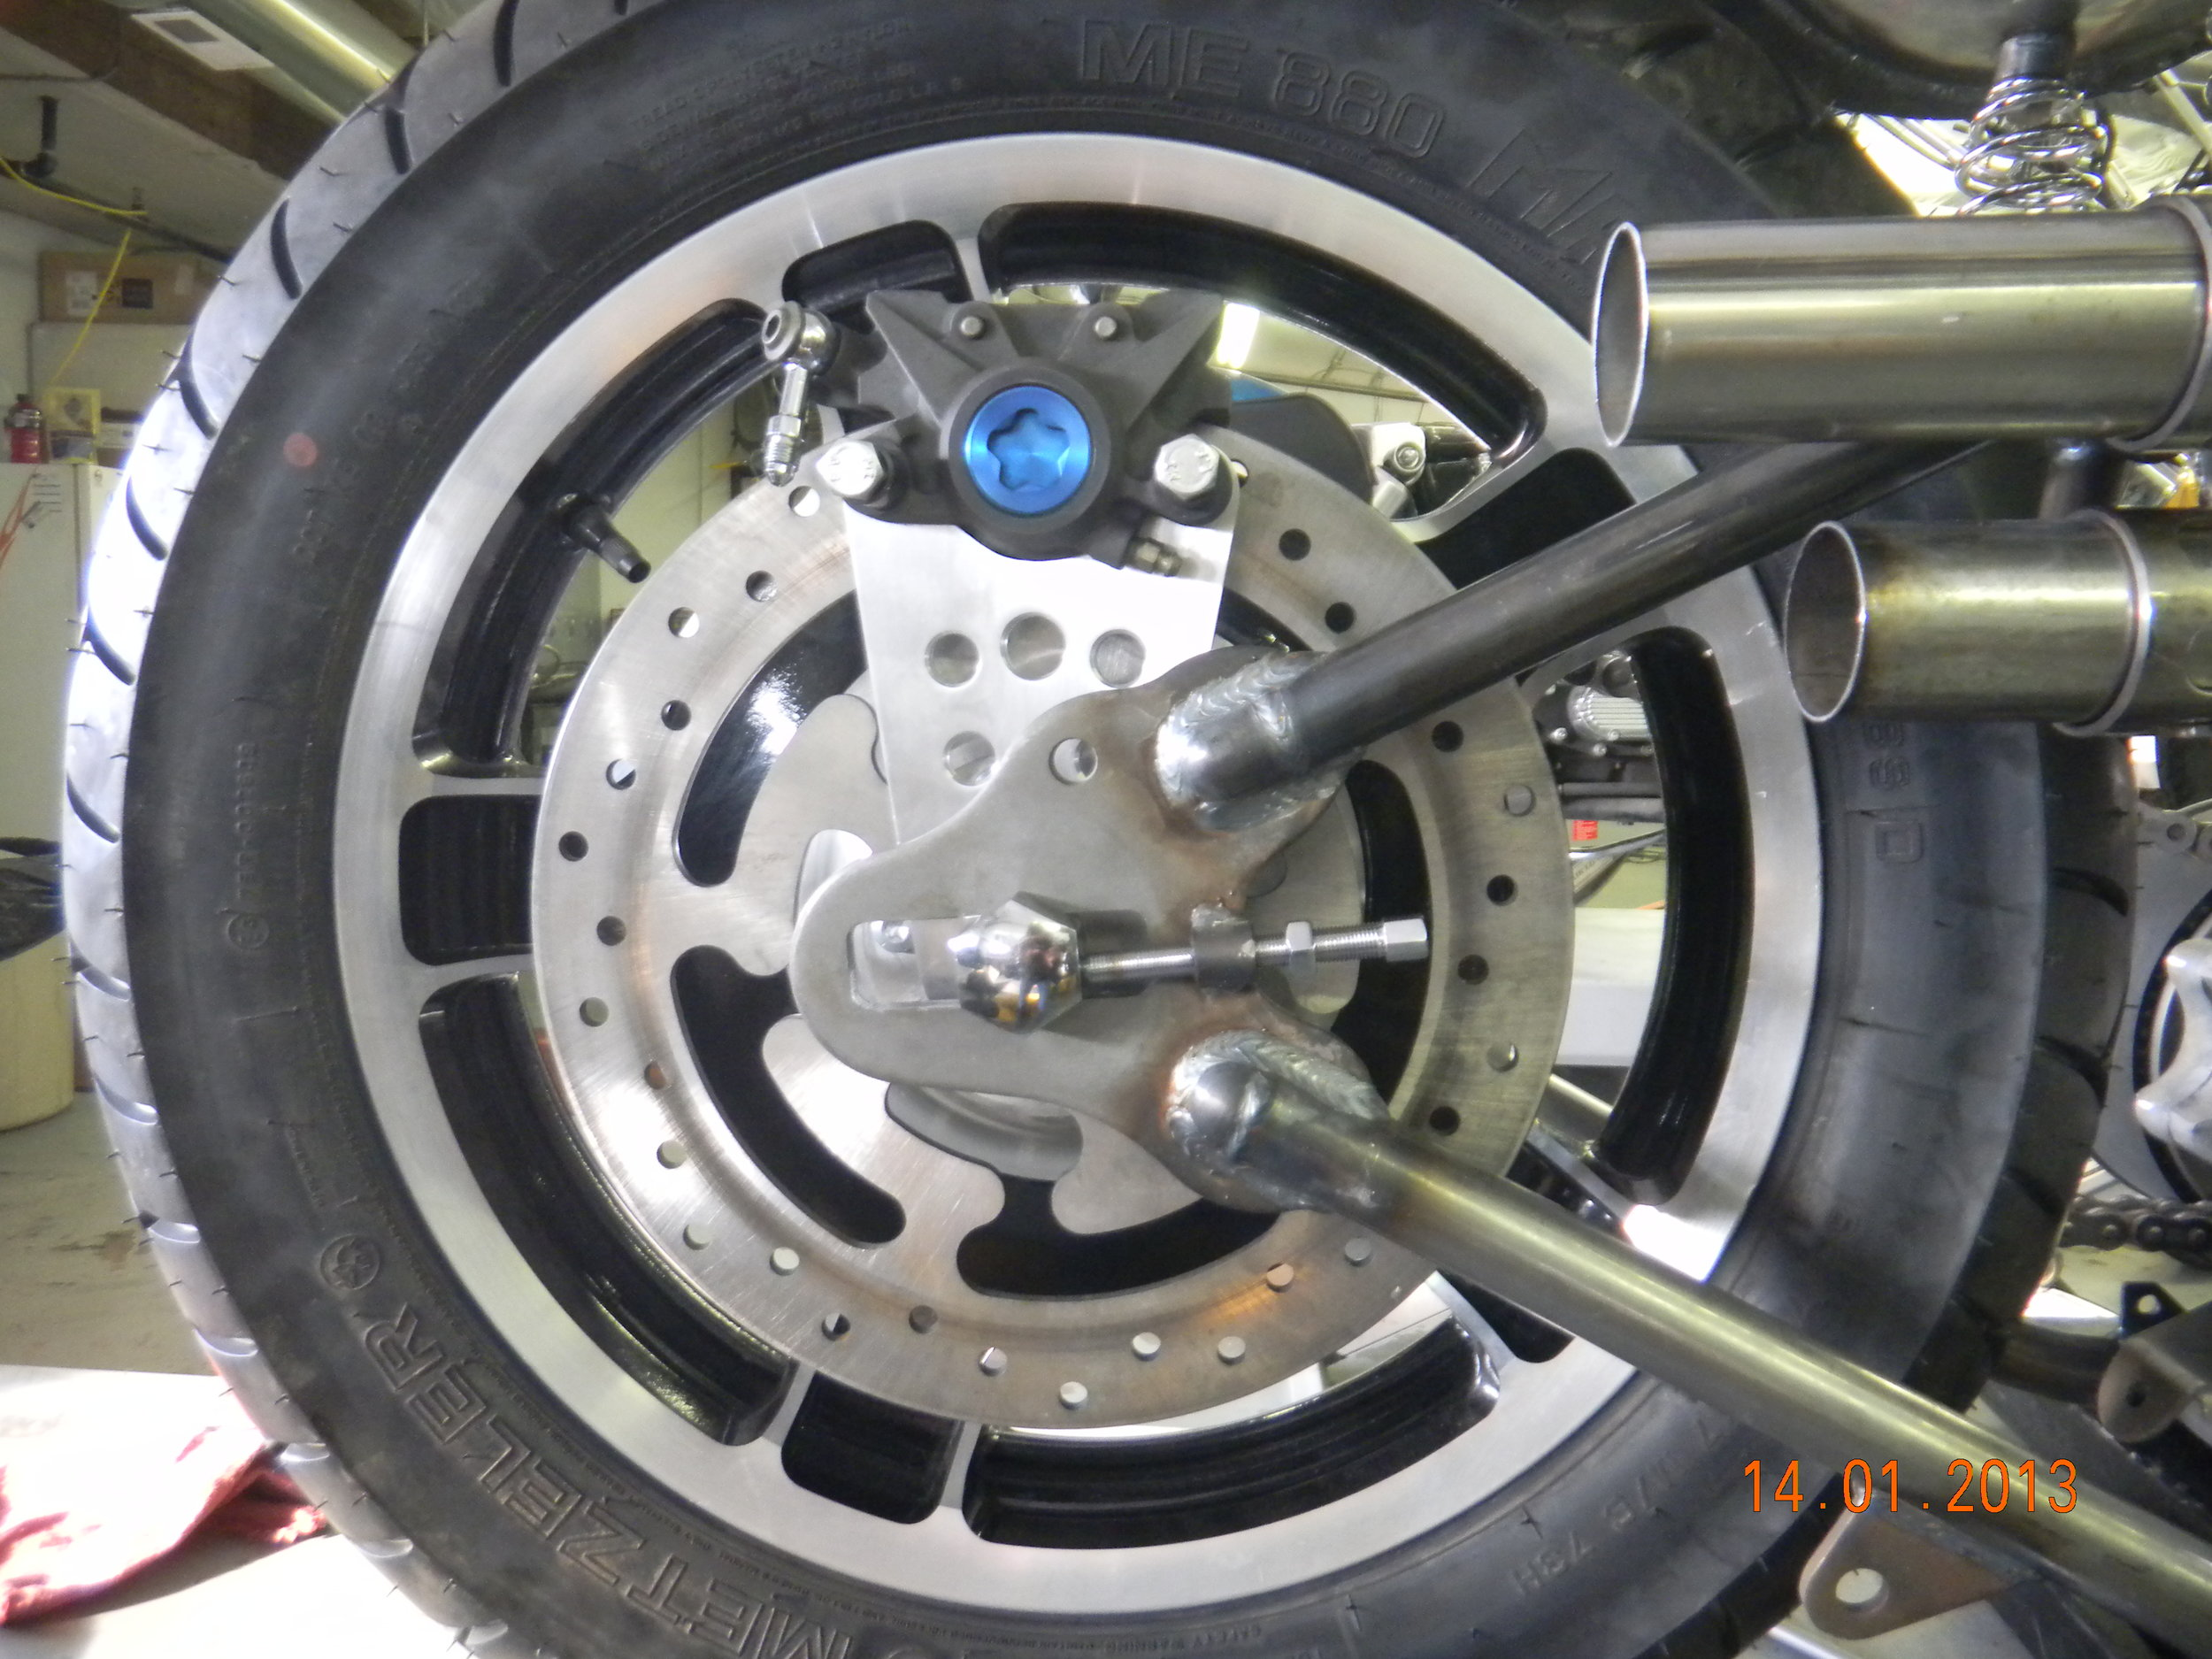 REAR BRAKE MOUNT AND BRACKET